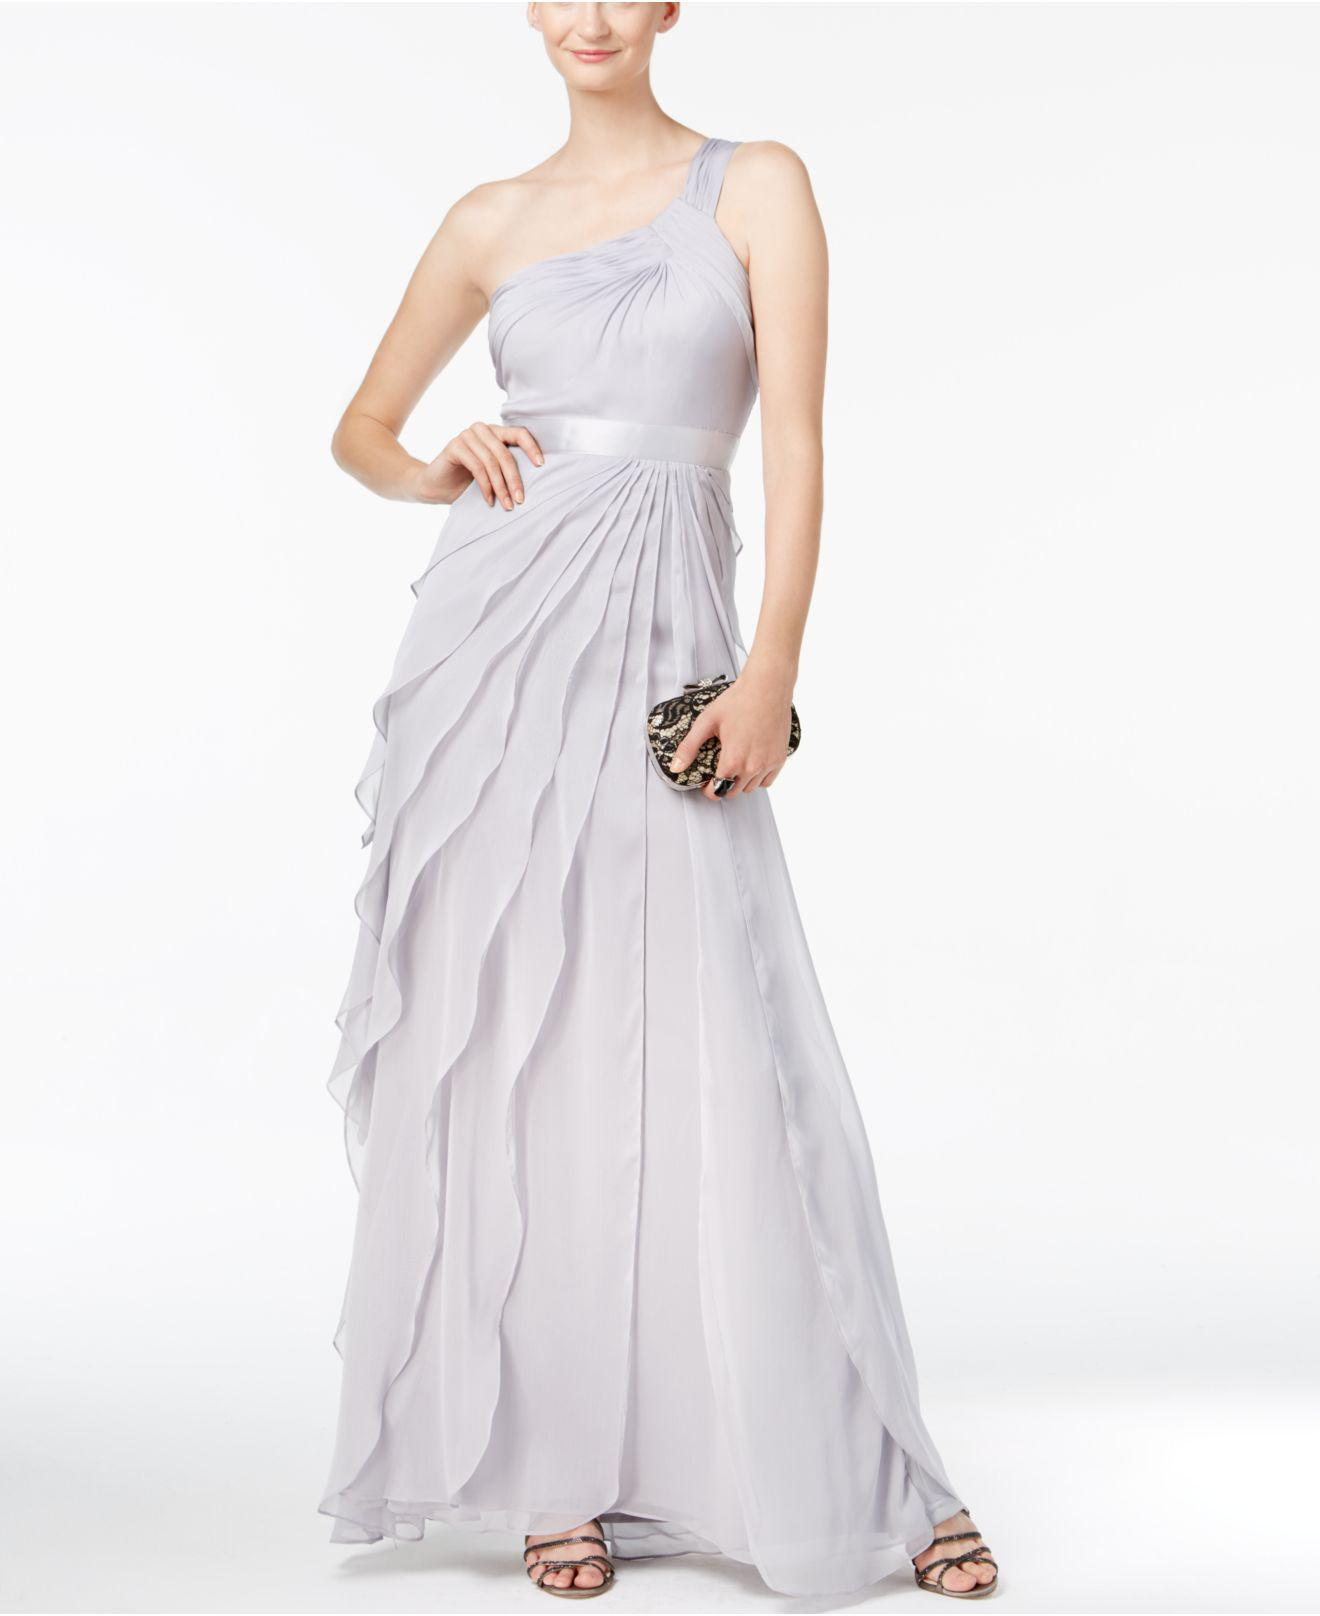 Lyst - Adrianna Papell One-shoulder Tiered Chiffon Gown in Metallic